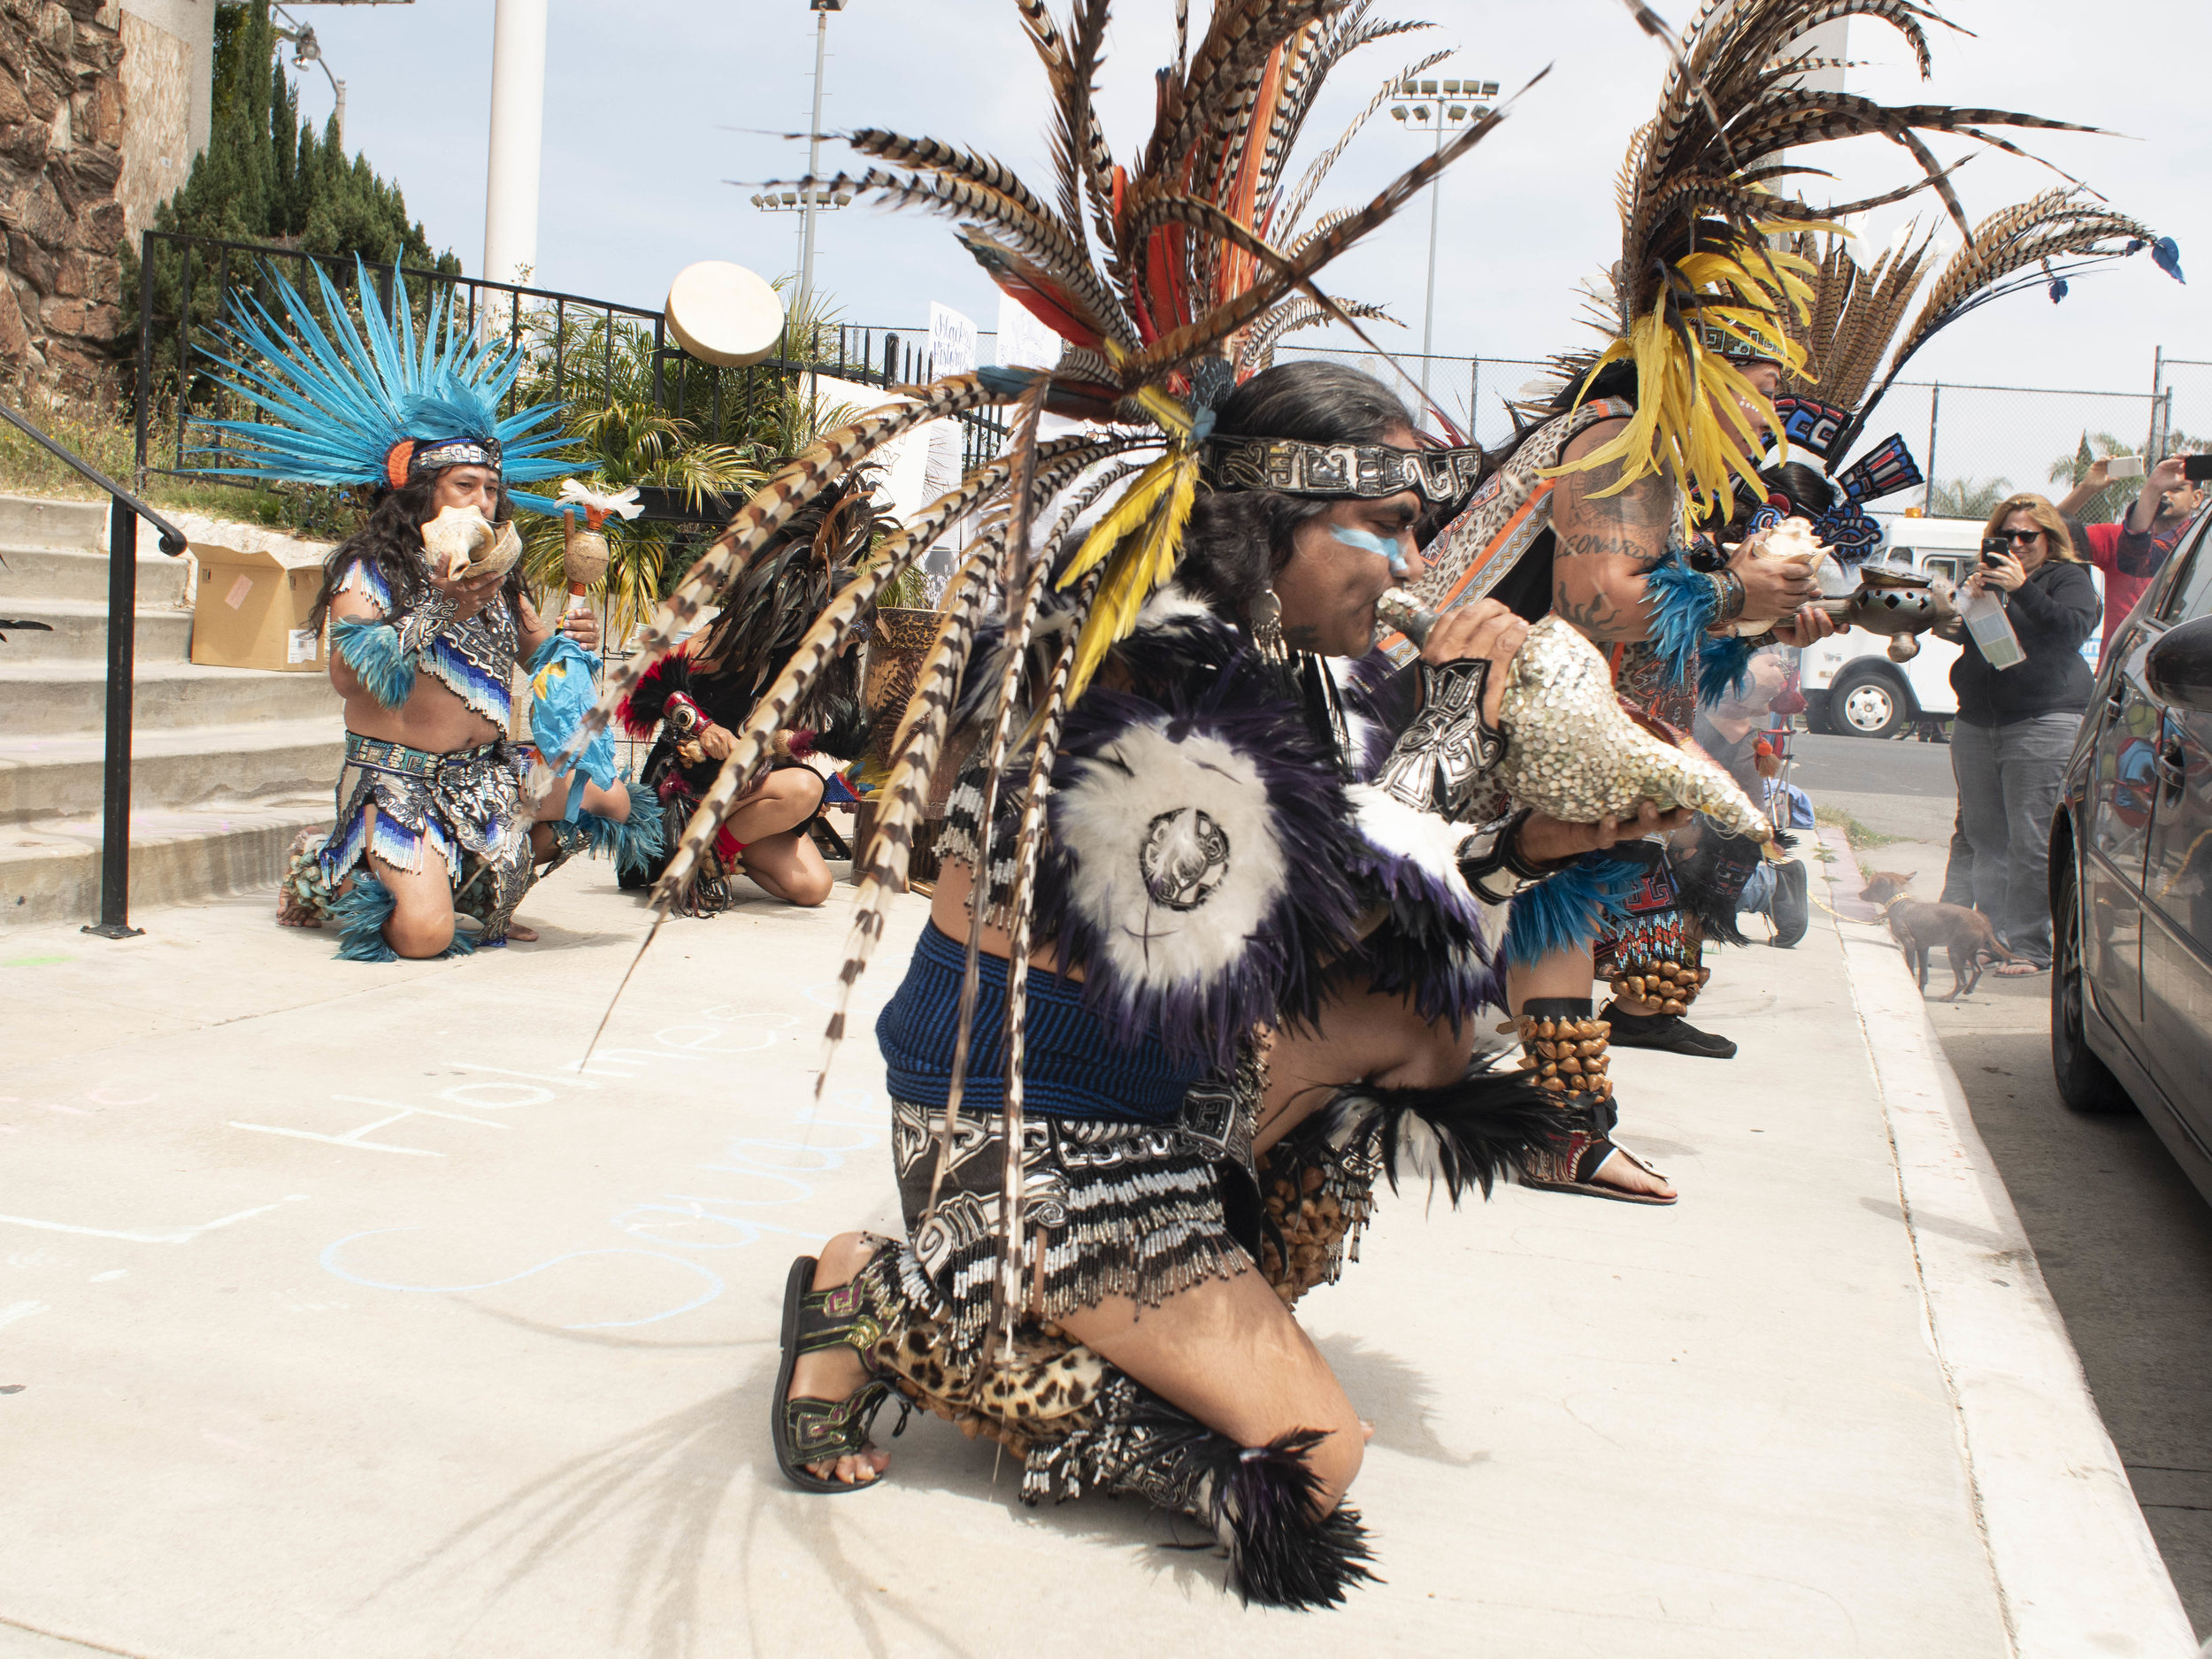 The Aztec Dance Group, Xipe-Totec opens a dance ceremony with incense and prayer at the First Baptist Church of Venice during a community rally for the church. Jay Penske owner of Variety and Rolling Stone Magazines purchased the church with plans that include a roof top deck, in an attempt to convert it into a single residence mega-mansion for he and his wife Elaine Irwin, former Victoria Secret model, and former wife of John Cougar Mellencamp. Sunday, April 14, 2019, Los Angeles, California (Victor Noerdlinger/Corsair)